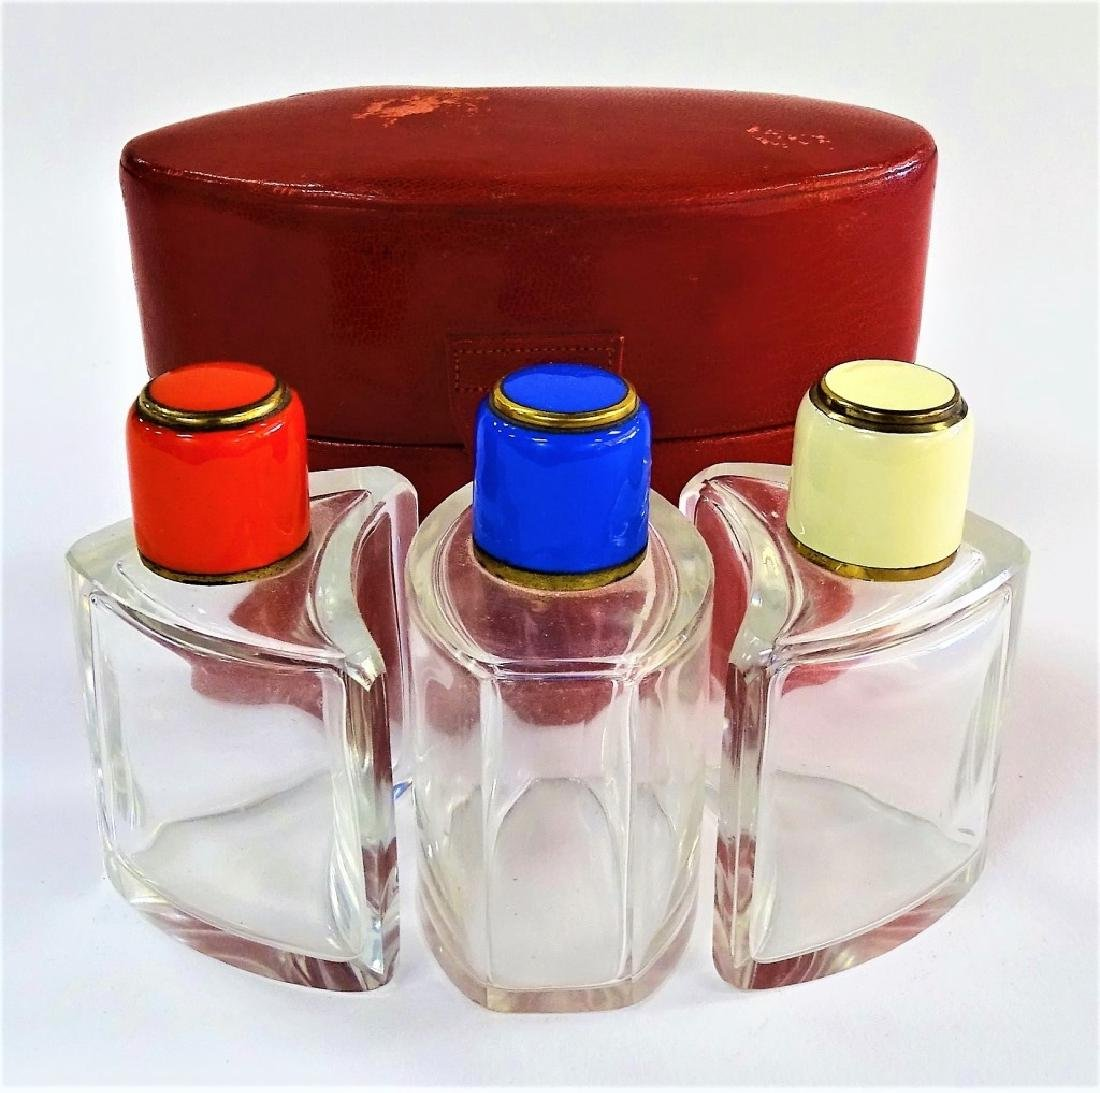 3 CRYSTAL SCENT BOTTLES WITH ENAMELED TOPS IN CASE